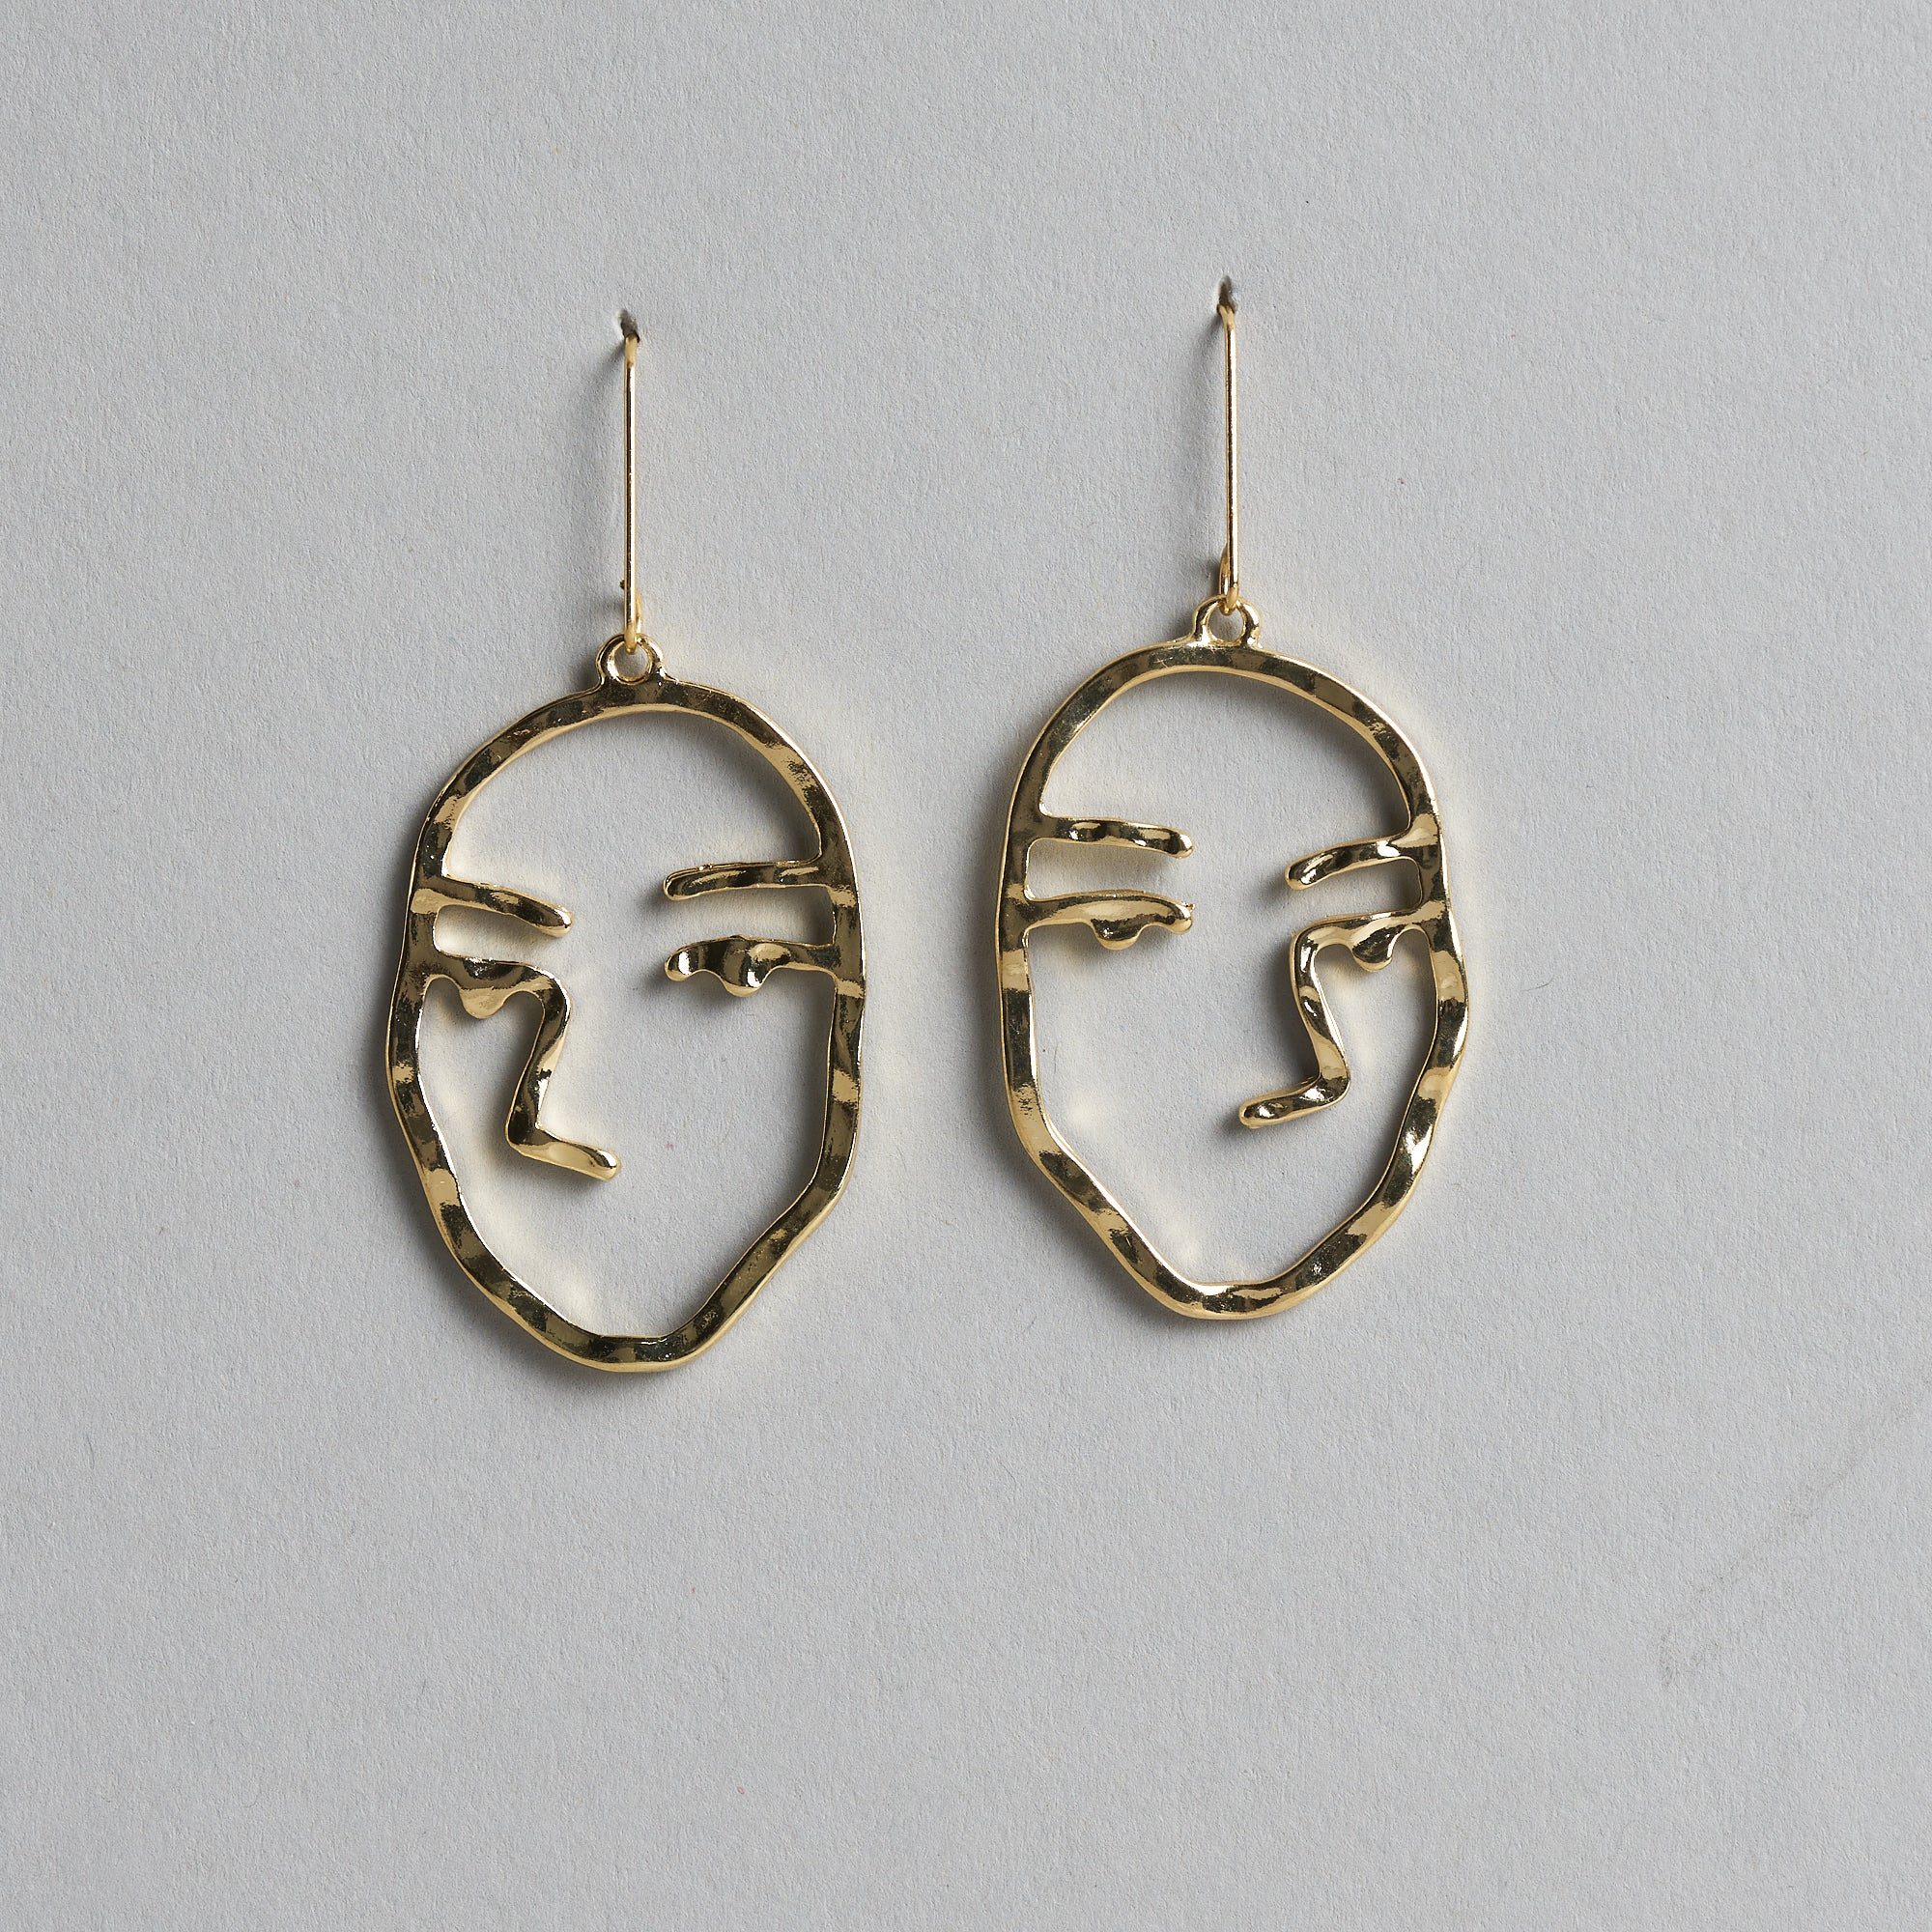 Juliette Face Earrings